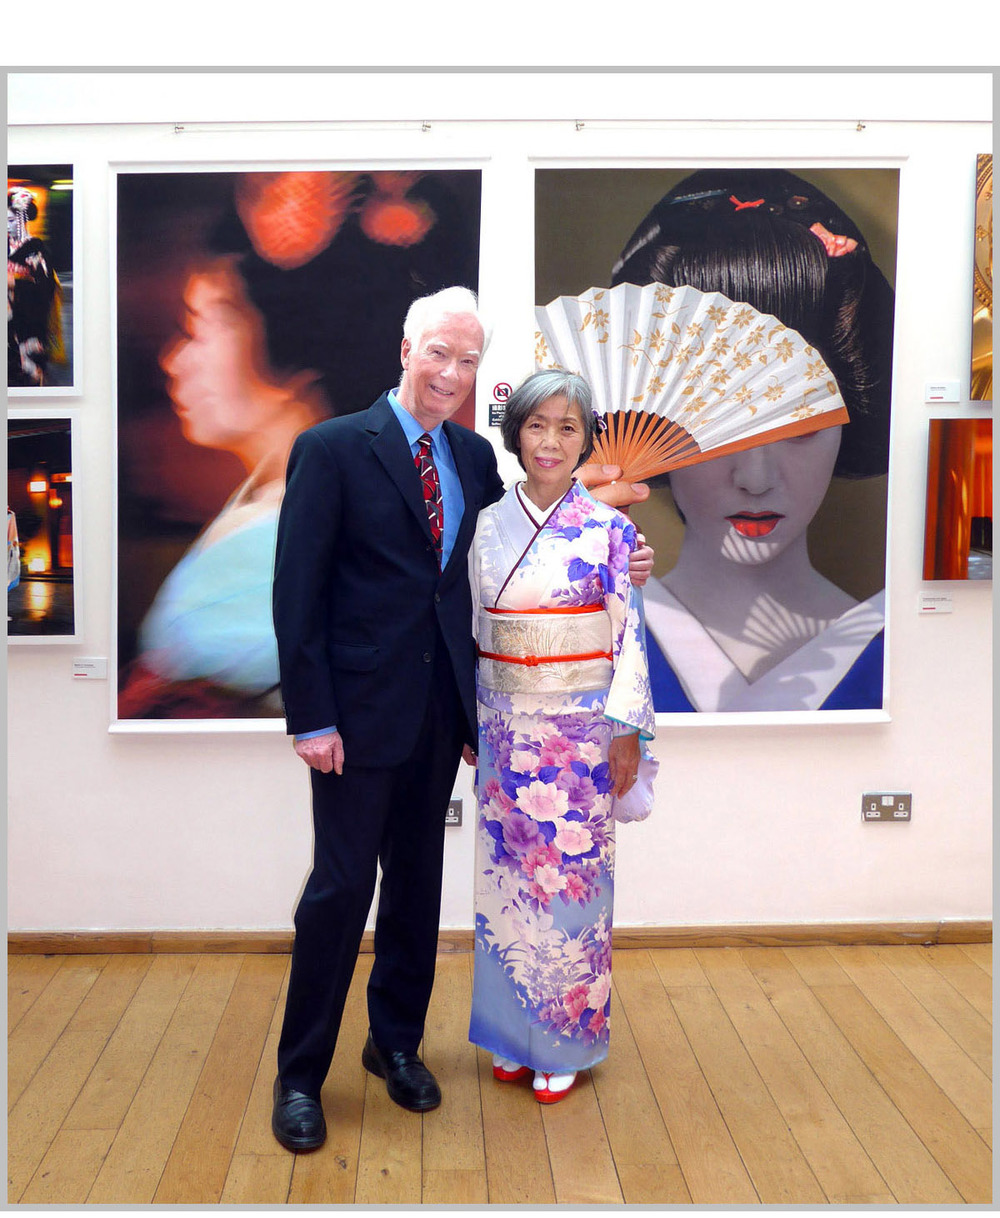 Jeremy Hoare and Chizuko Kimura at the opening of 'Kyoto Dreams' at Burgh House, Hampstead, London on 6 July 2016.